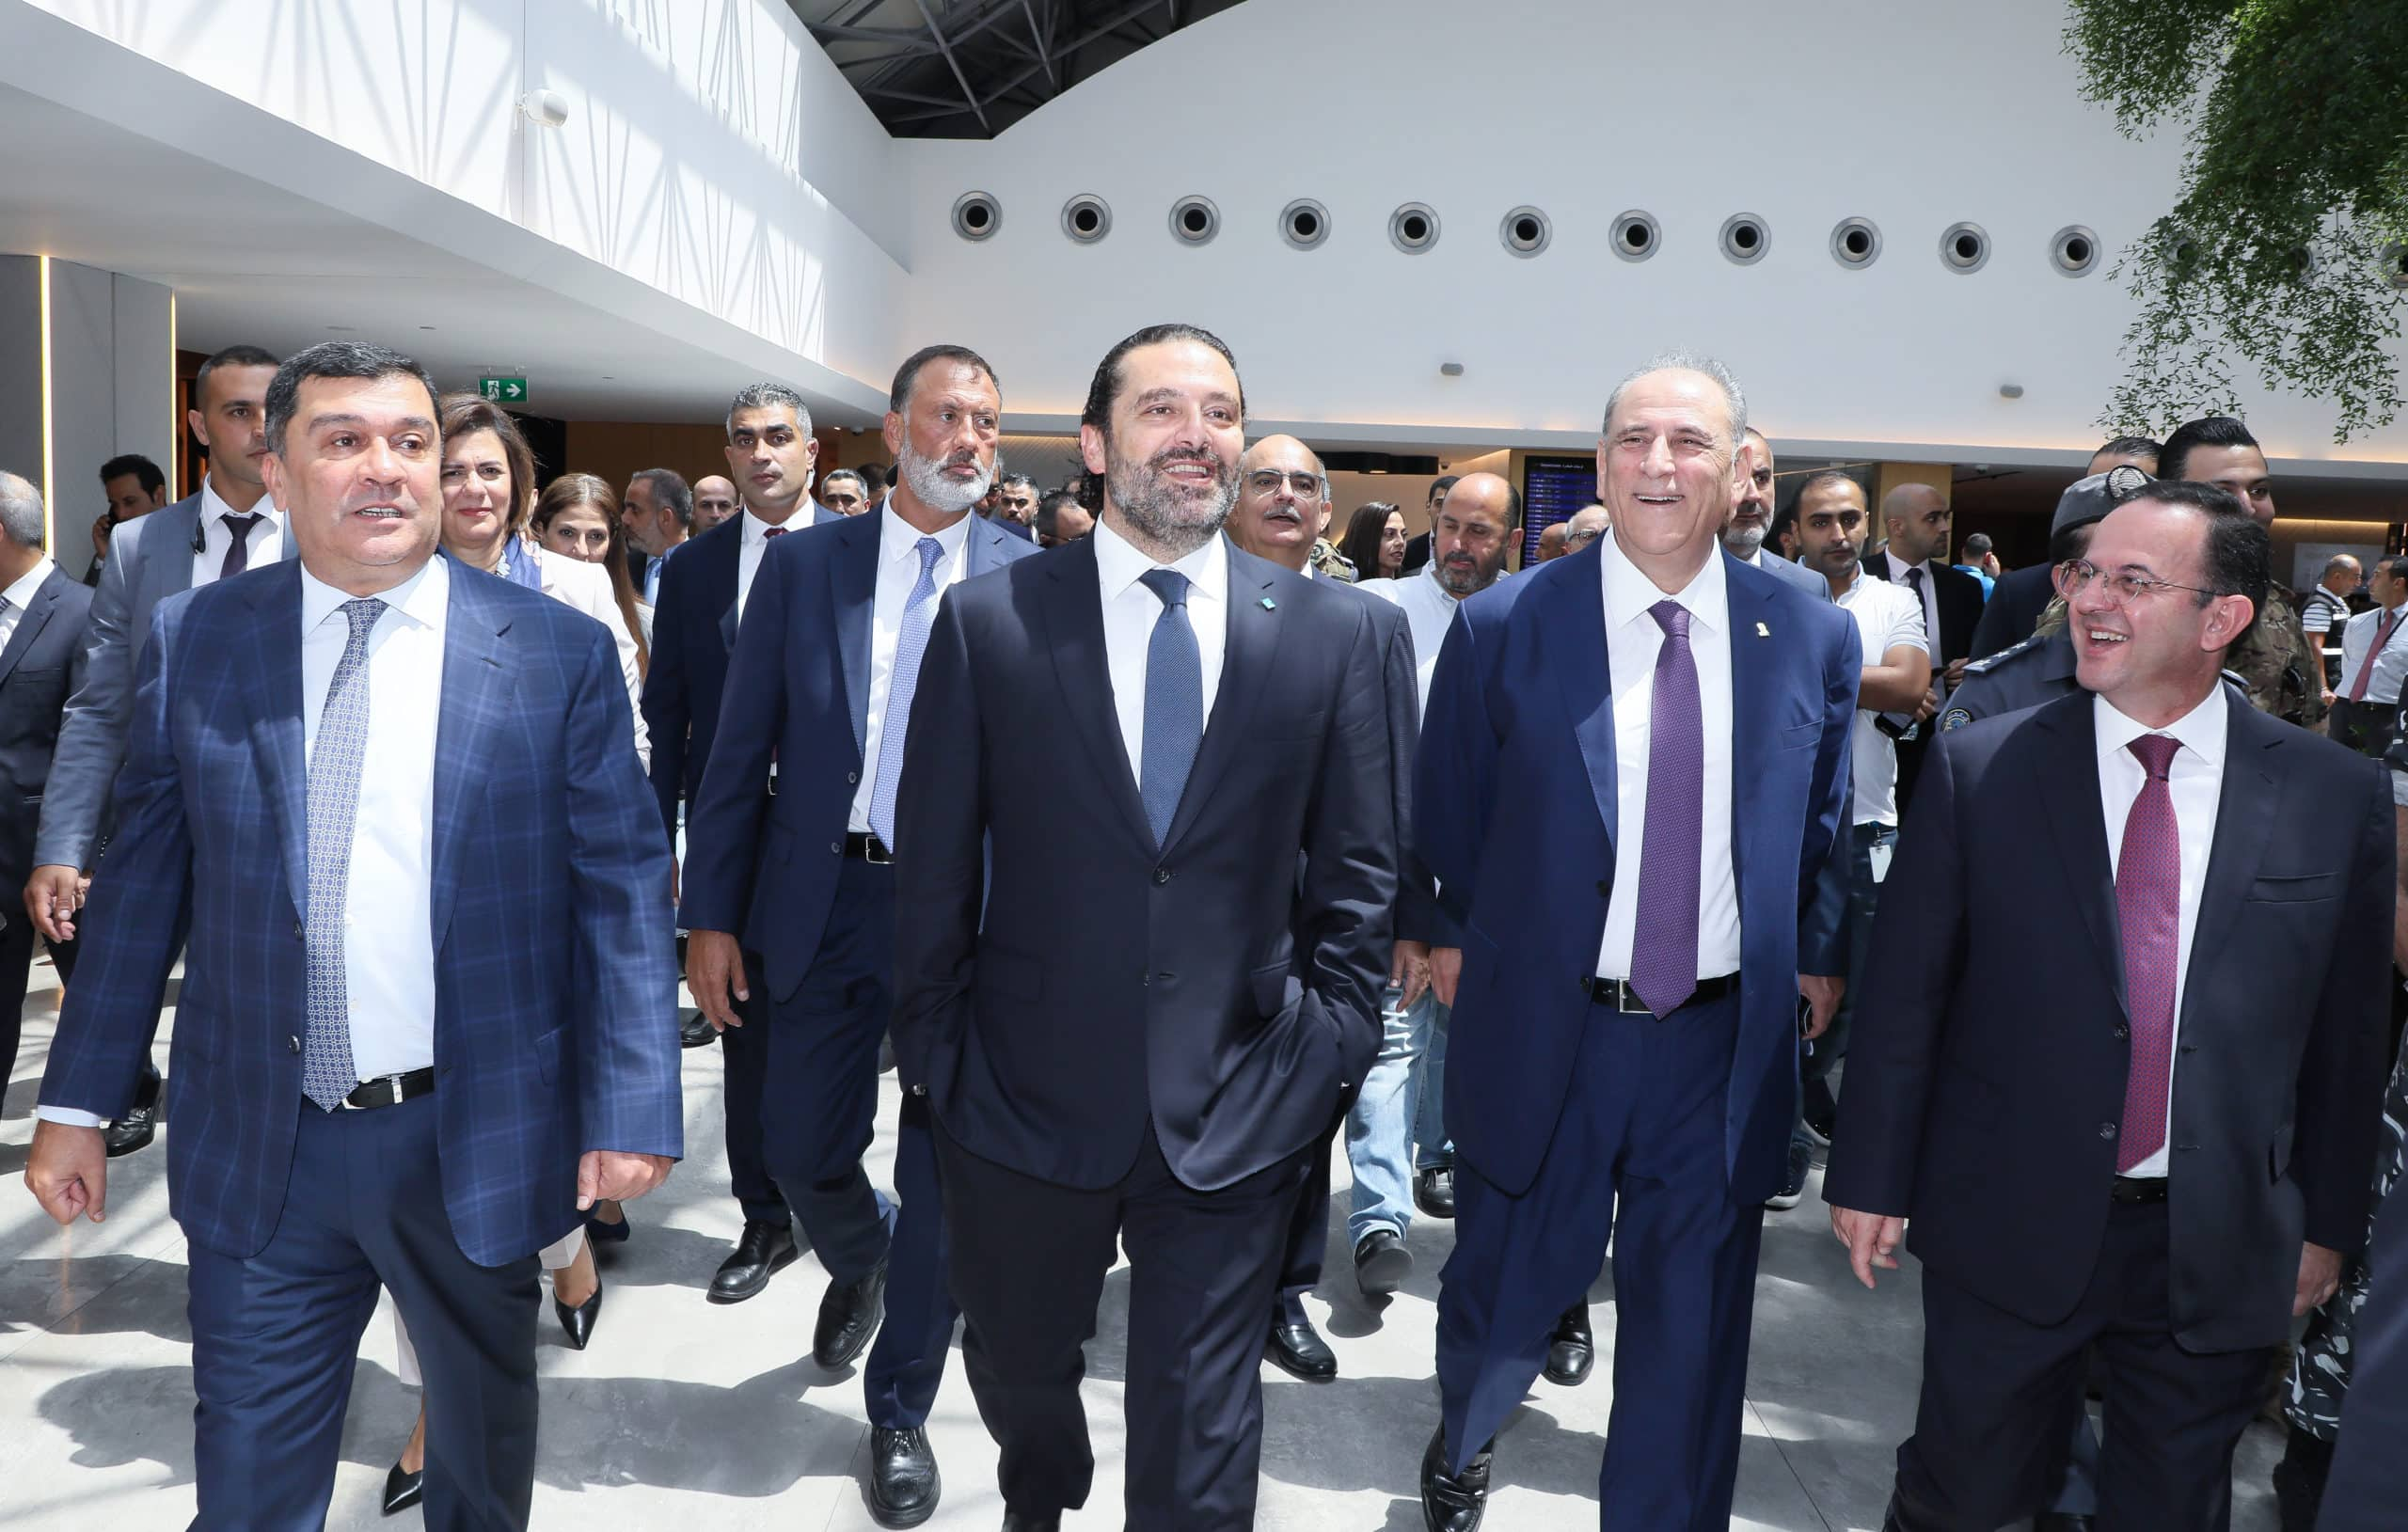 Le Premier Ministre inaugurant la 2ème phase des travaux d'expansion de l'Aéroport International de Beyrouth. Crédit Photo: Dalati & Nohra